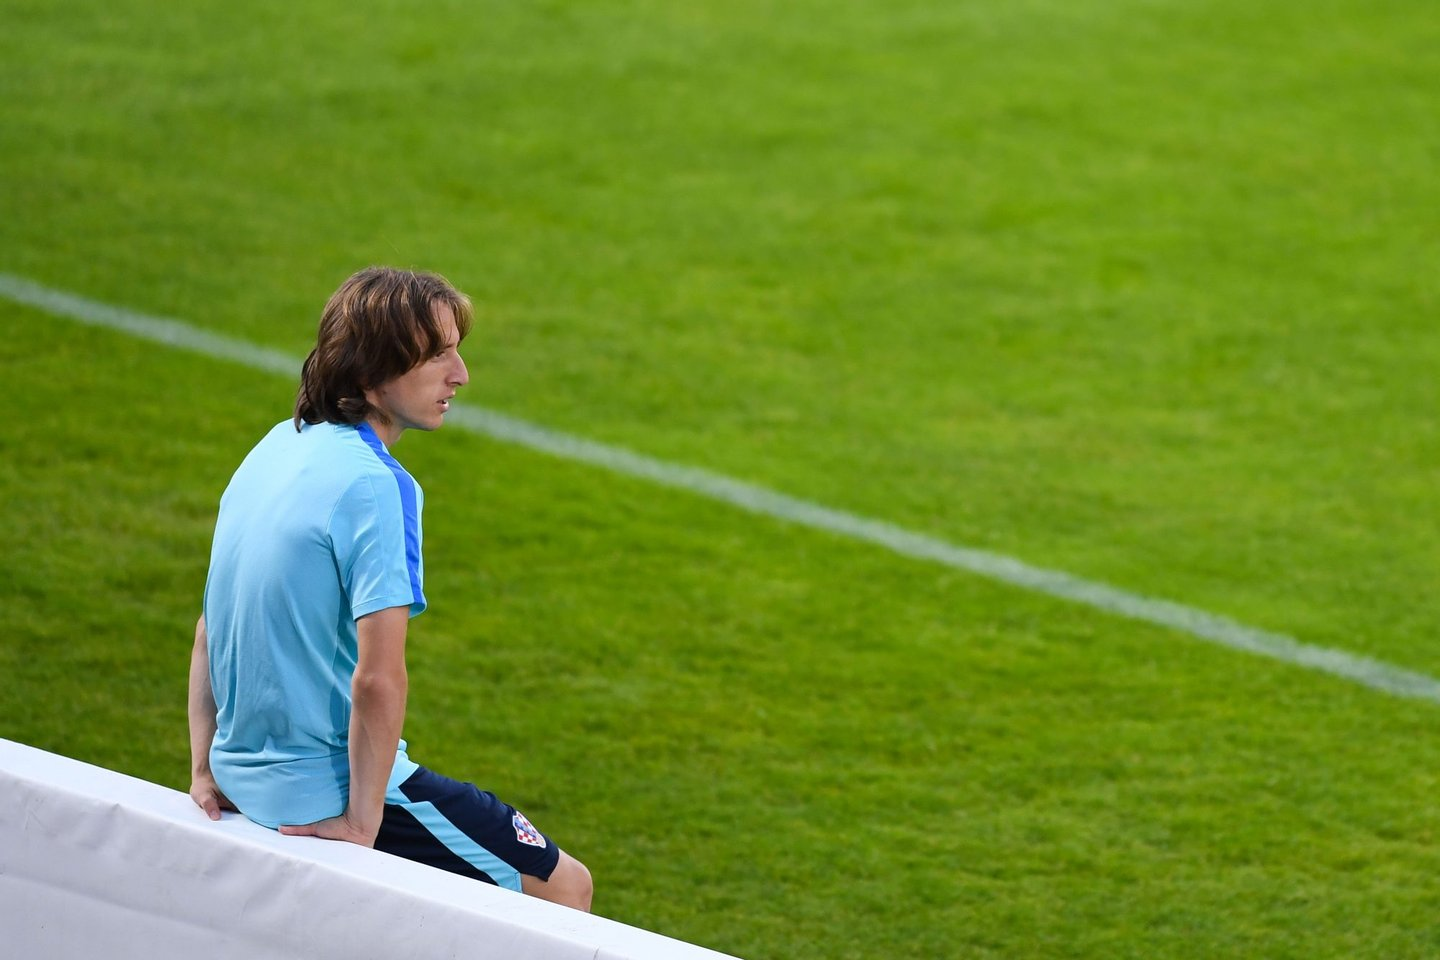 BORDEAUX, FRANCE - JUNE 20:  Luka Modric of Croatia looks on during a training session ahead of their UEFA  Euro 2016 Group D match against Spain at Stade Chaban-Delmas on June 20, 2016 in Bordeaux, France.  (Photo by David Ramos/Getty Images)